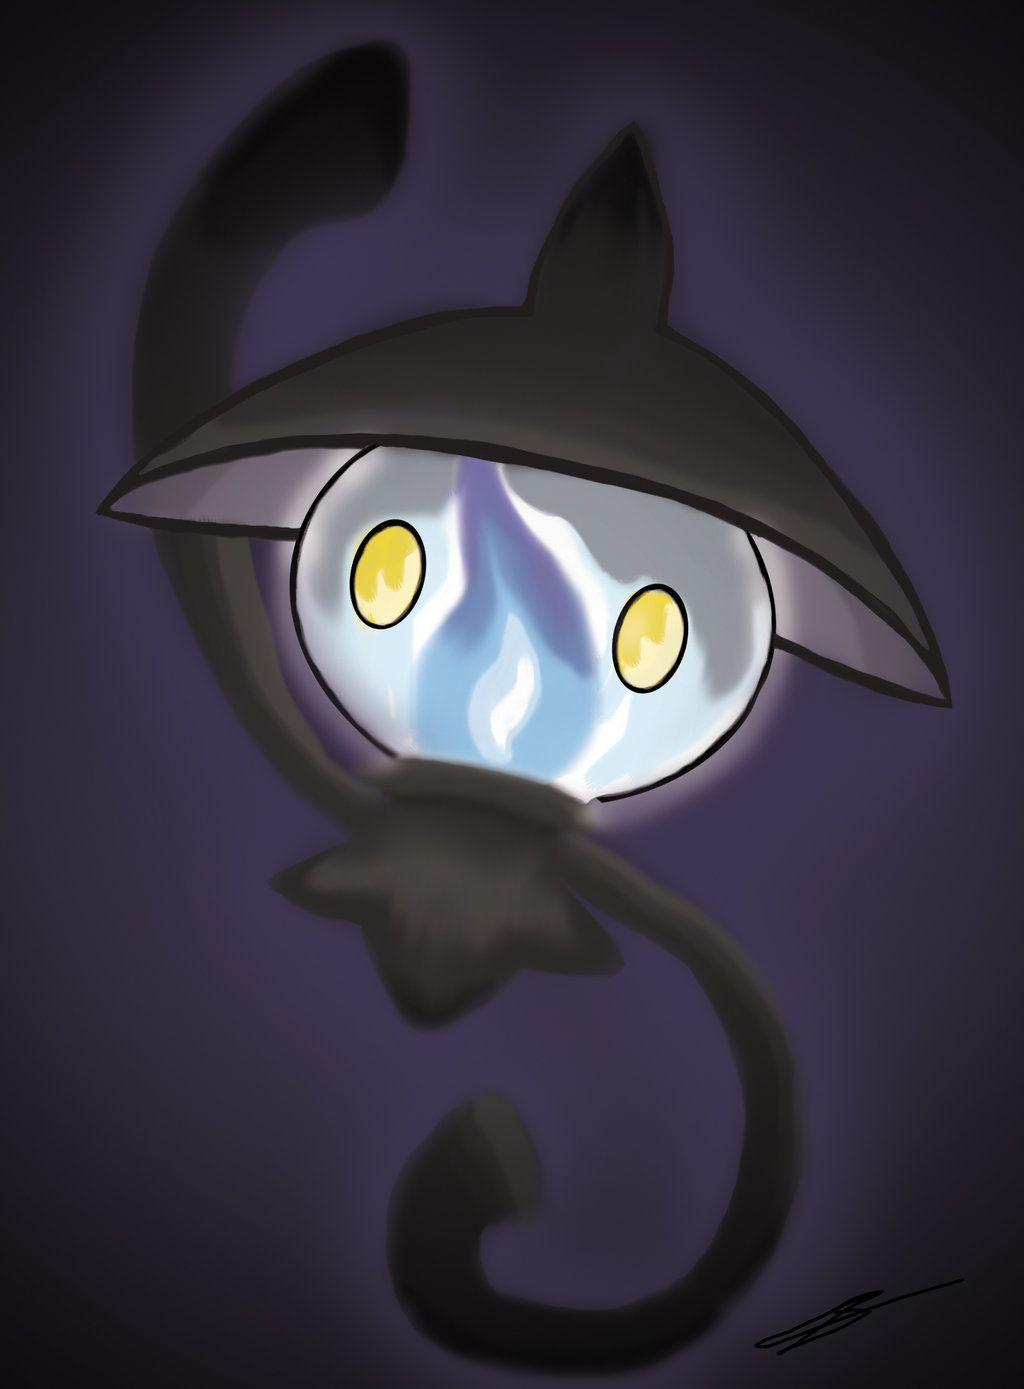 Lampent by kempogirl007 on DeviantArt